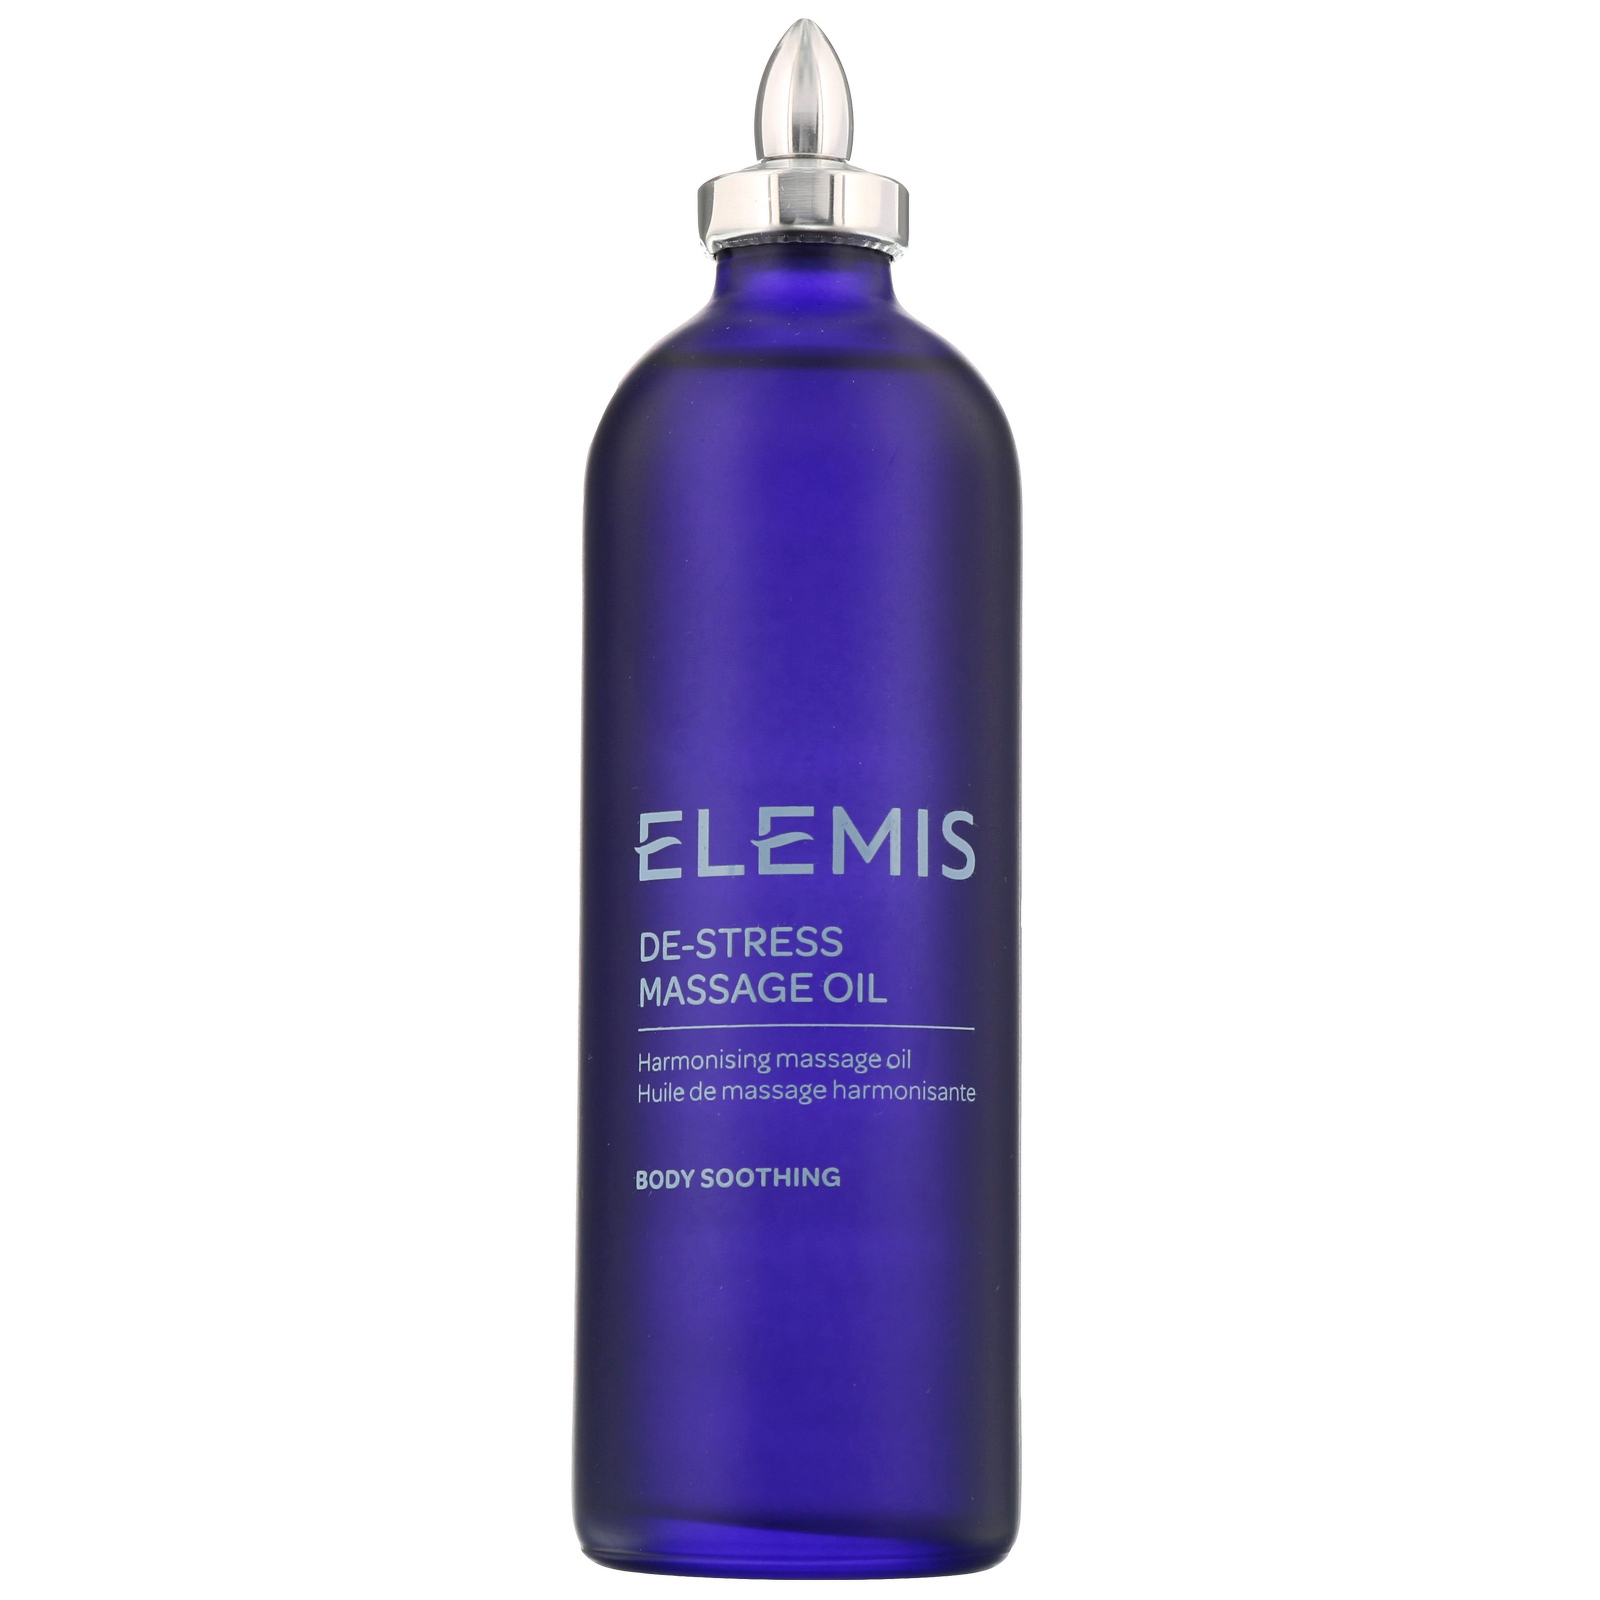 Elemis Body Soothing De-Stress Massage Oil 100ml / 3.3 fl.oz.